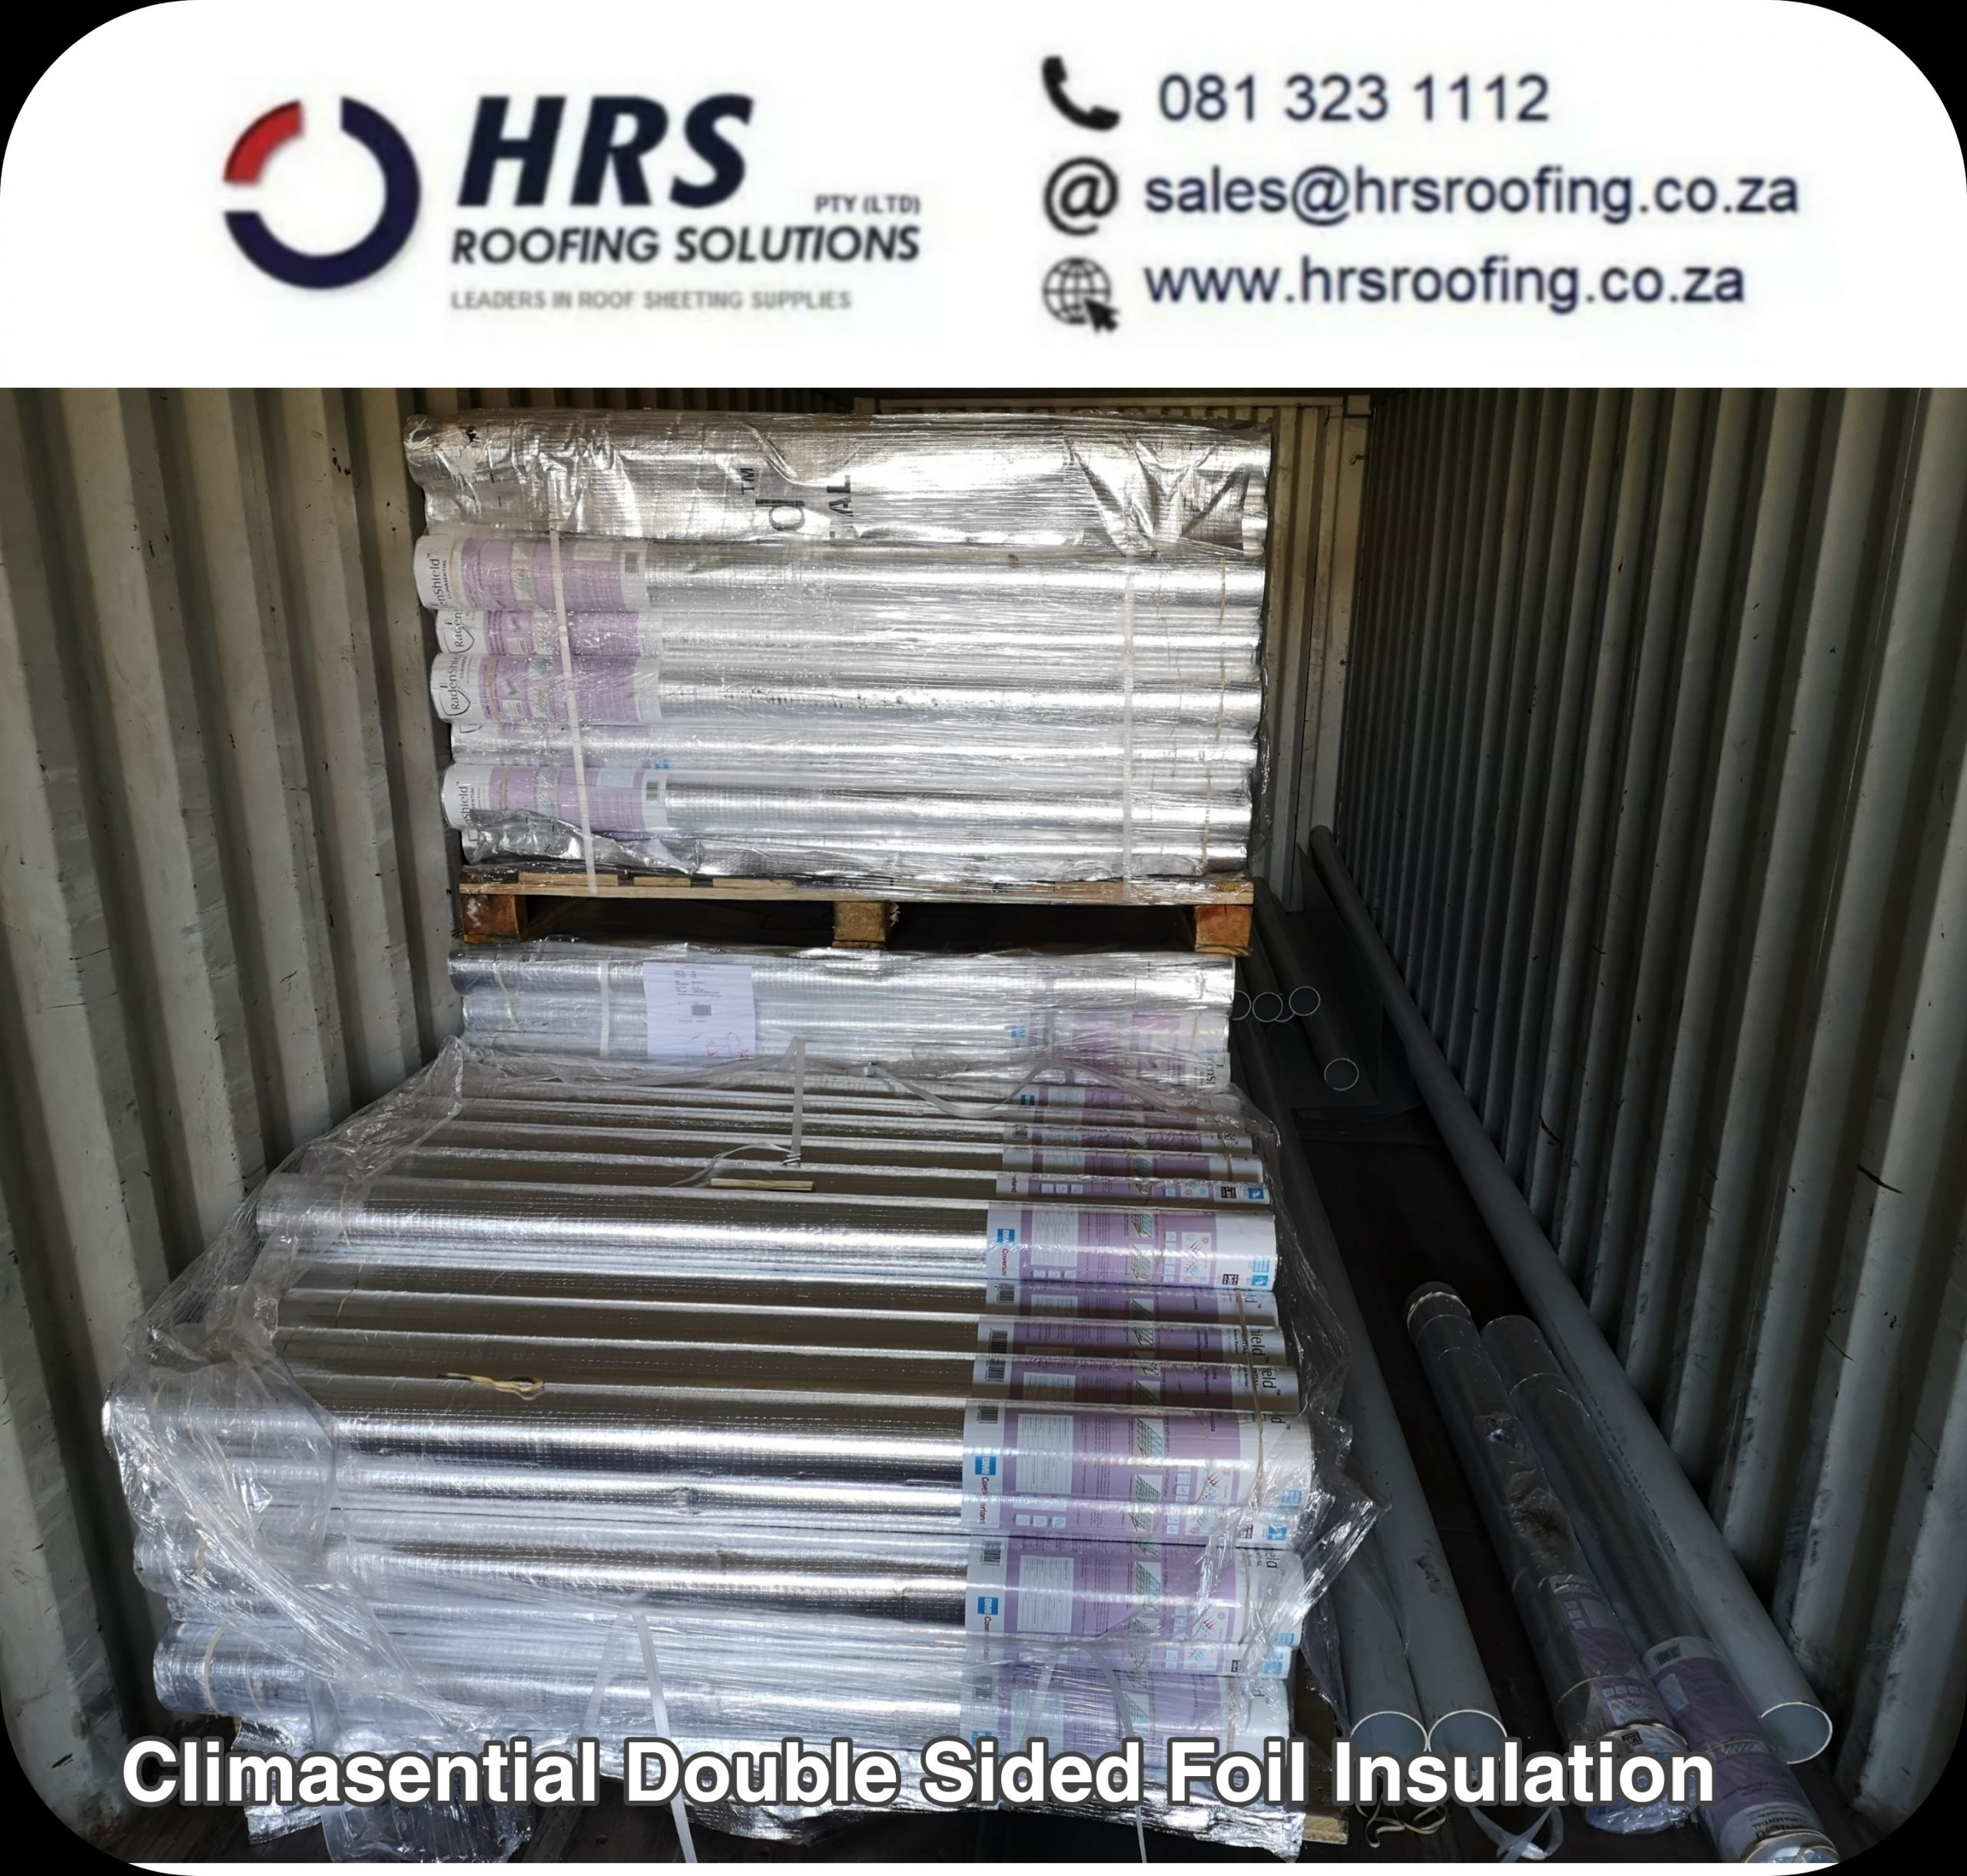 fasteners hrs roofing sheeting ibr or Corrugated Colorbond foil insulation scaled - Roofing Gallery